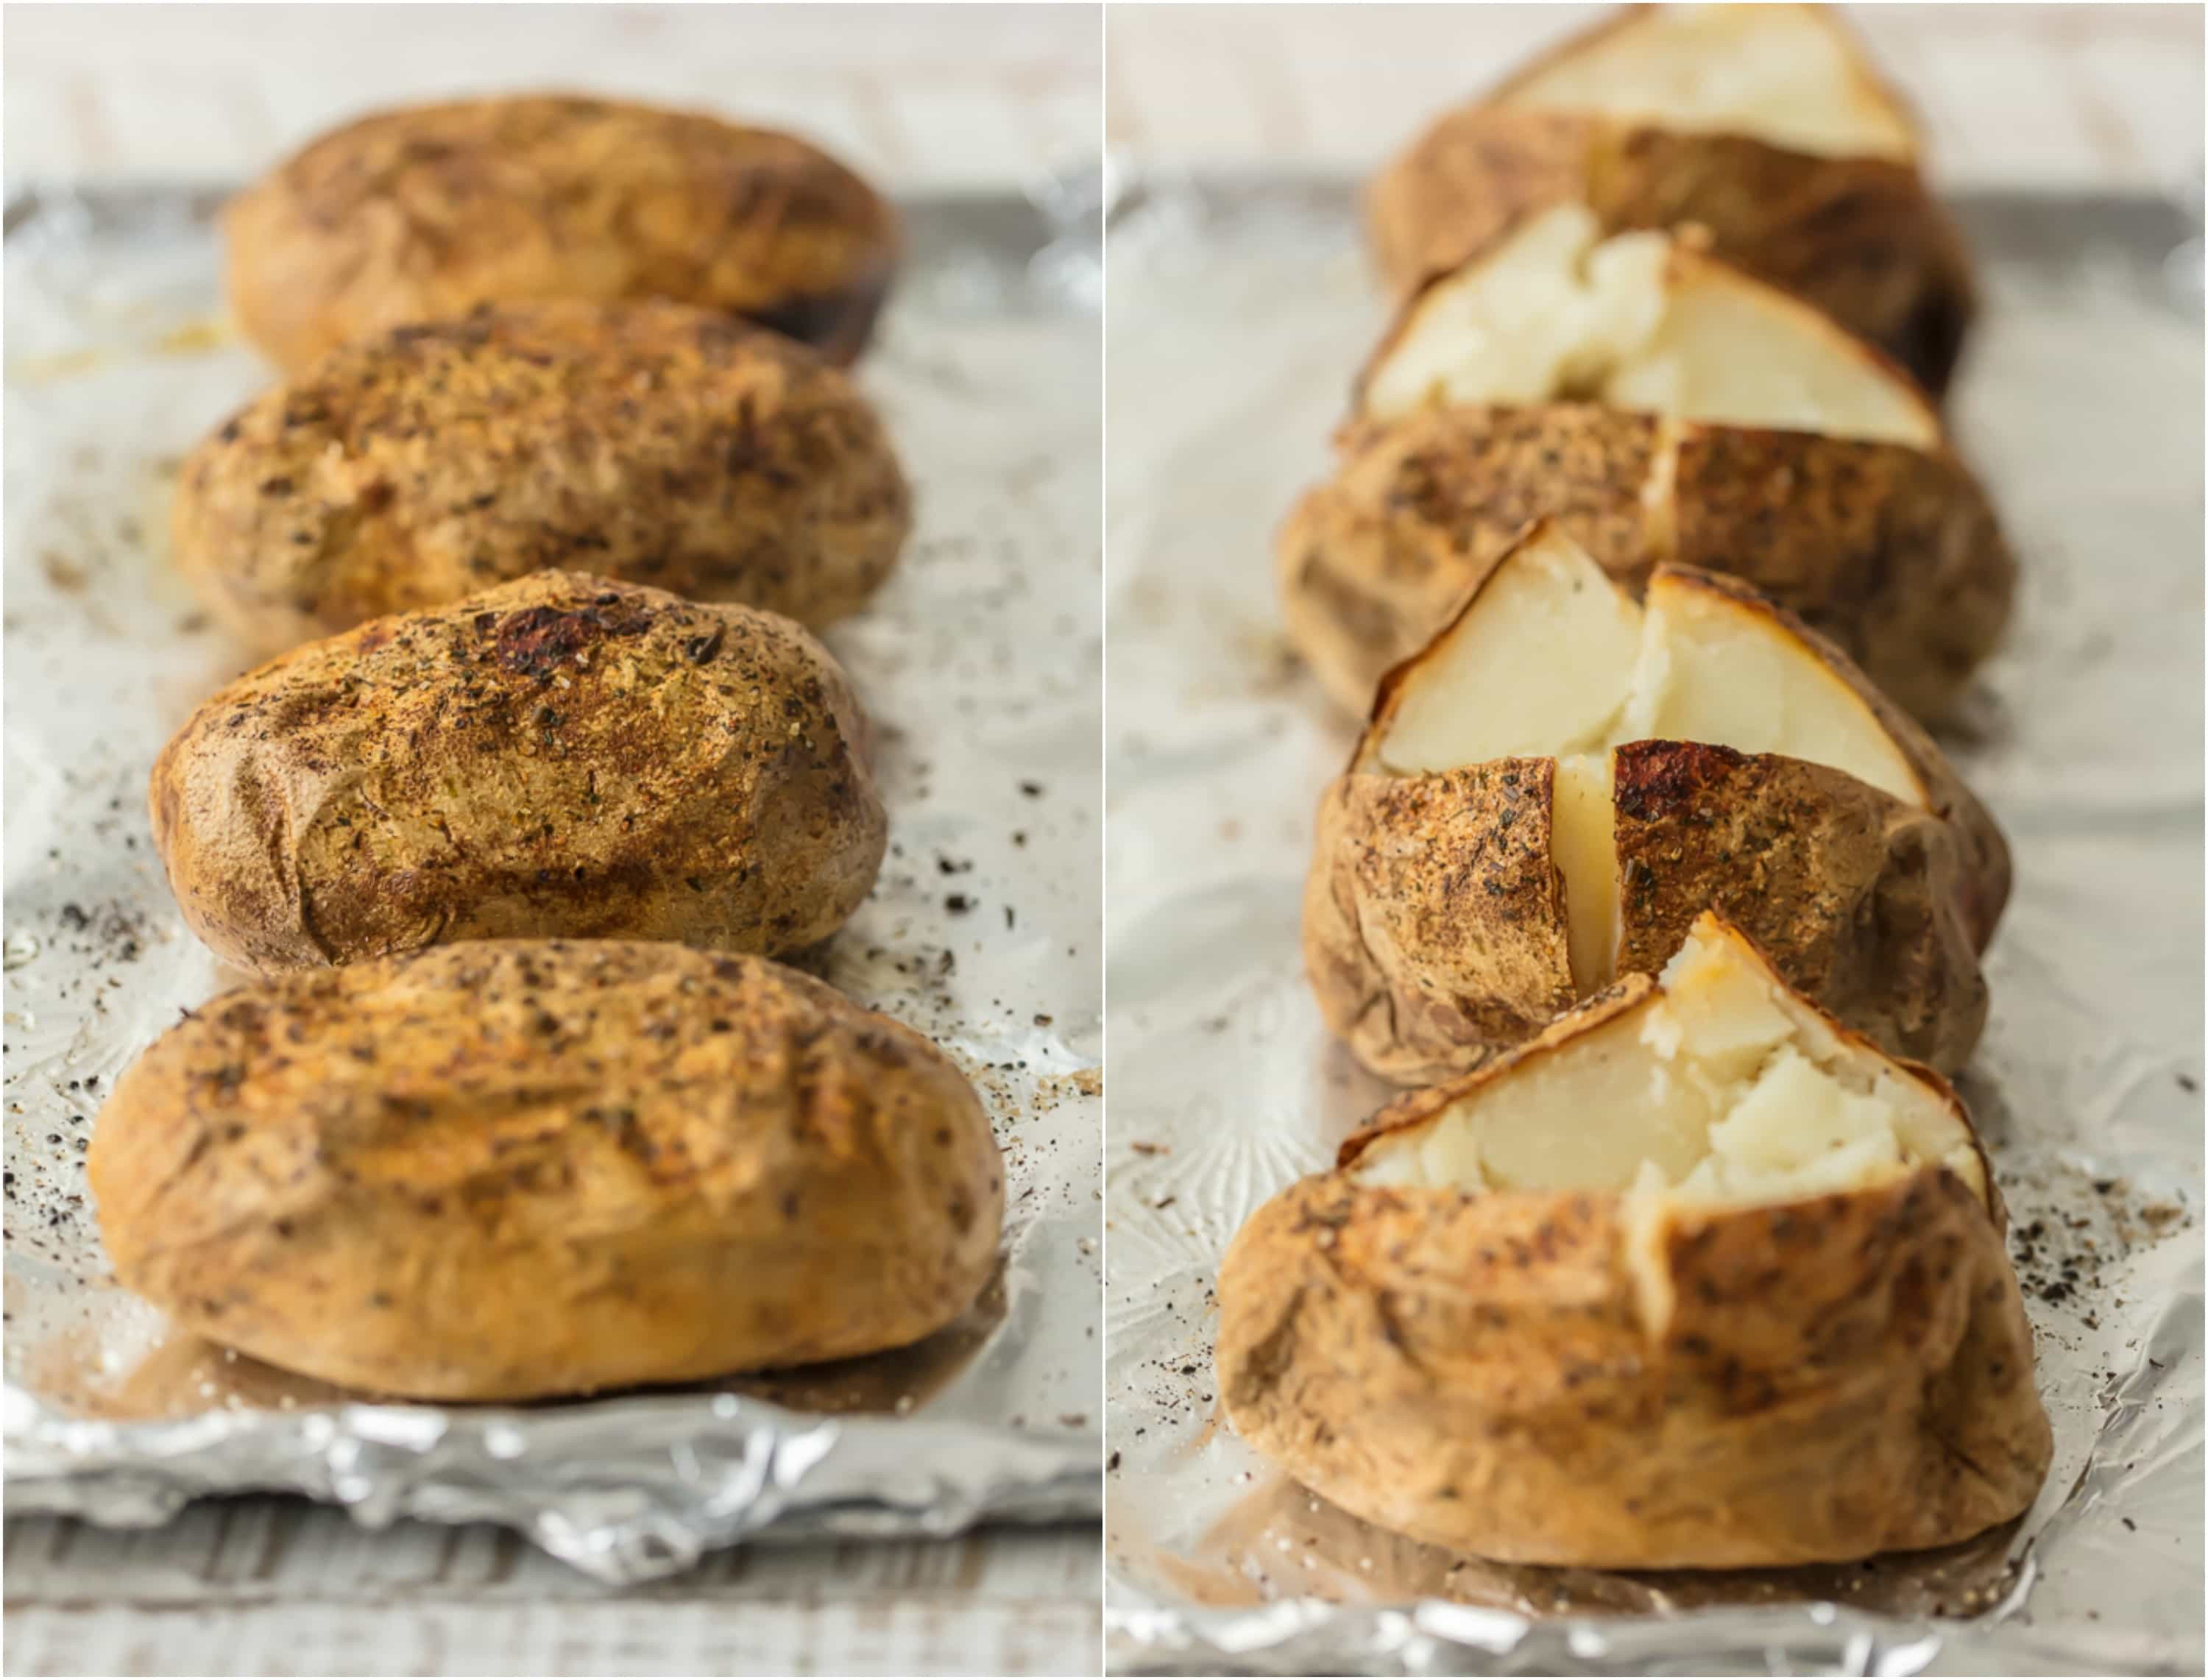 How To Make The Perfect Baked Potato  How to Cook a Baked Potato PERFECT Baked Potato Recipe